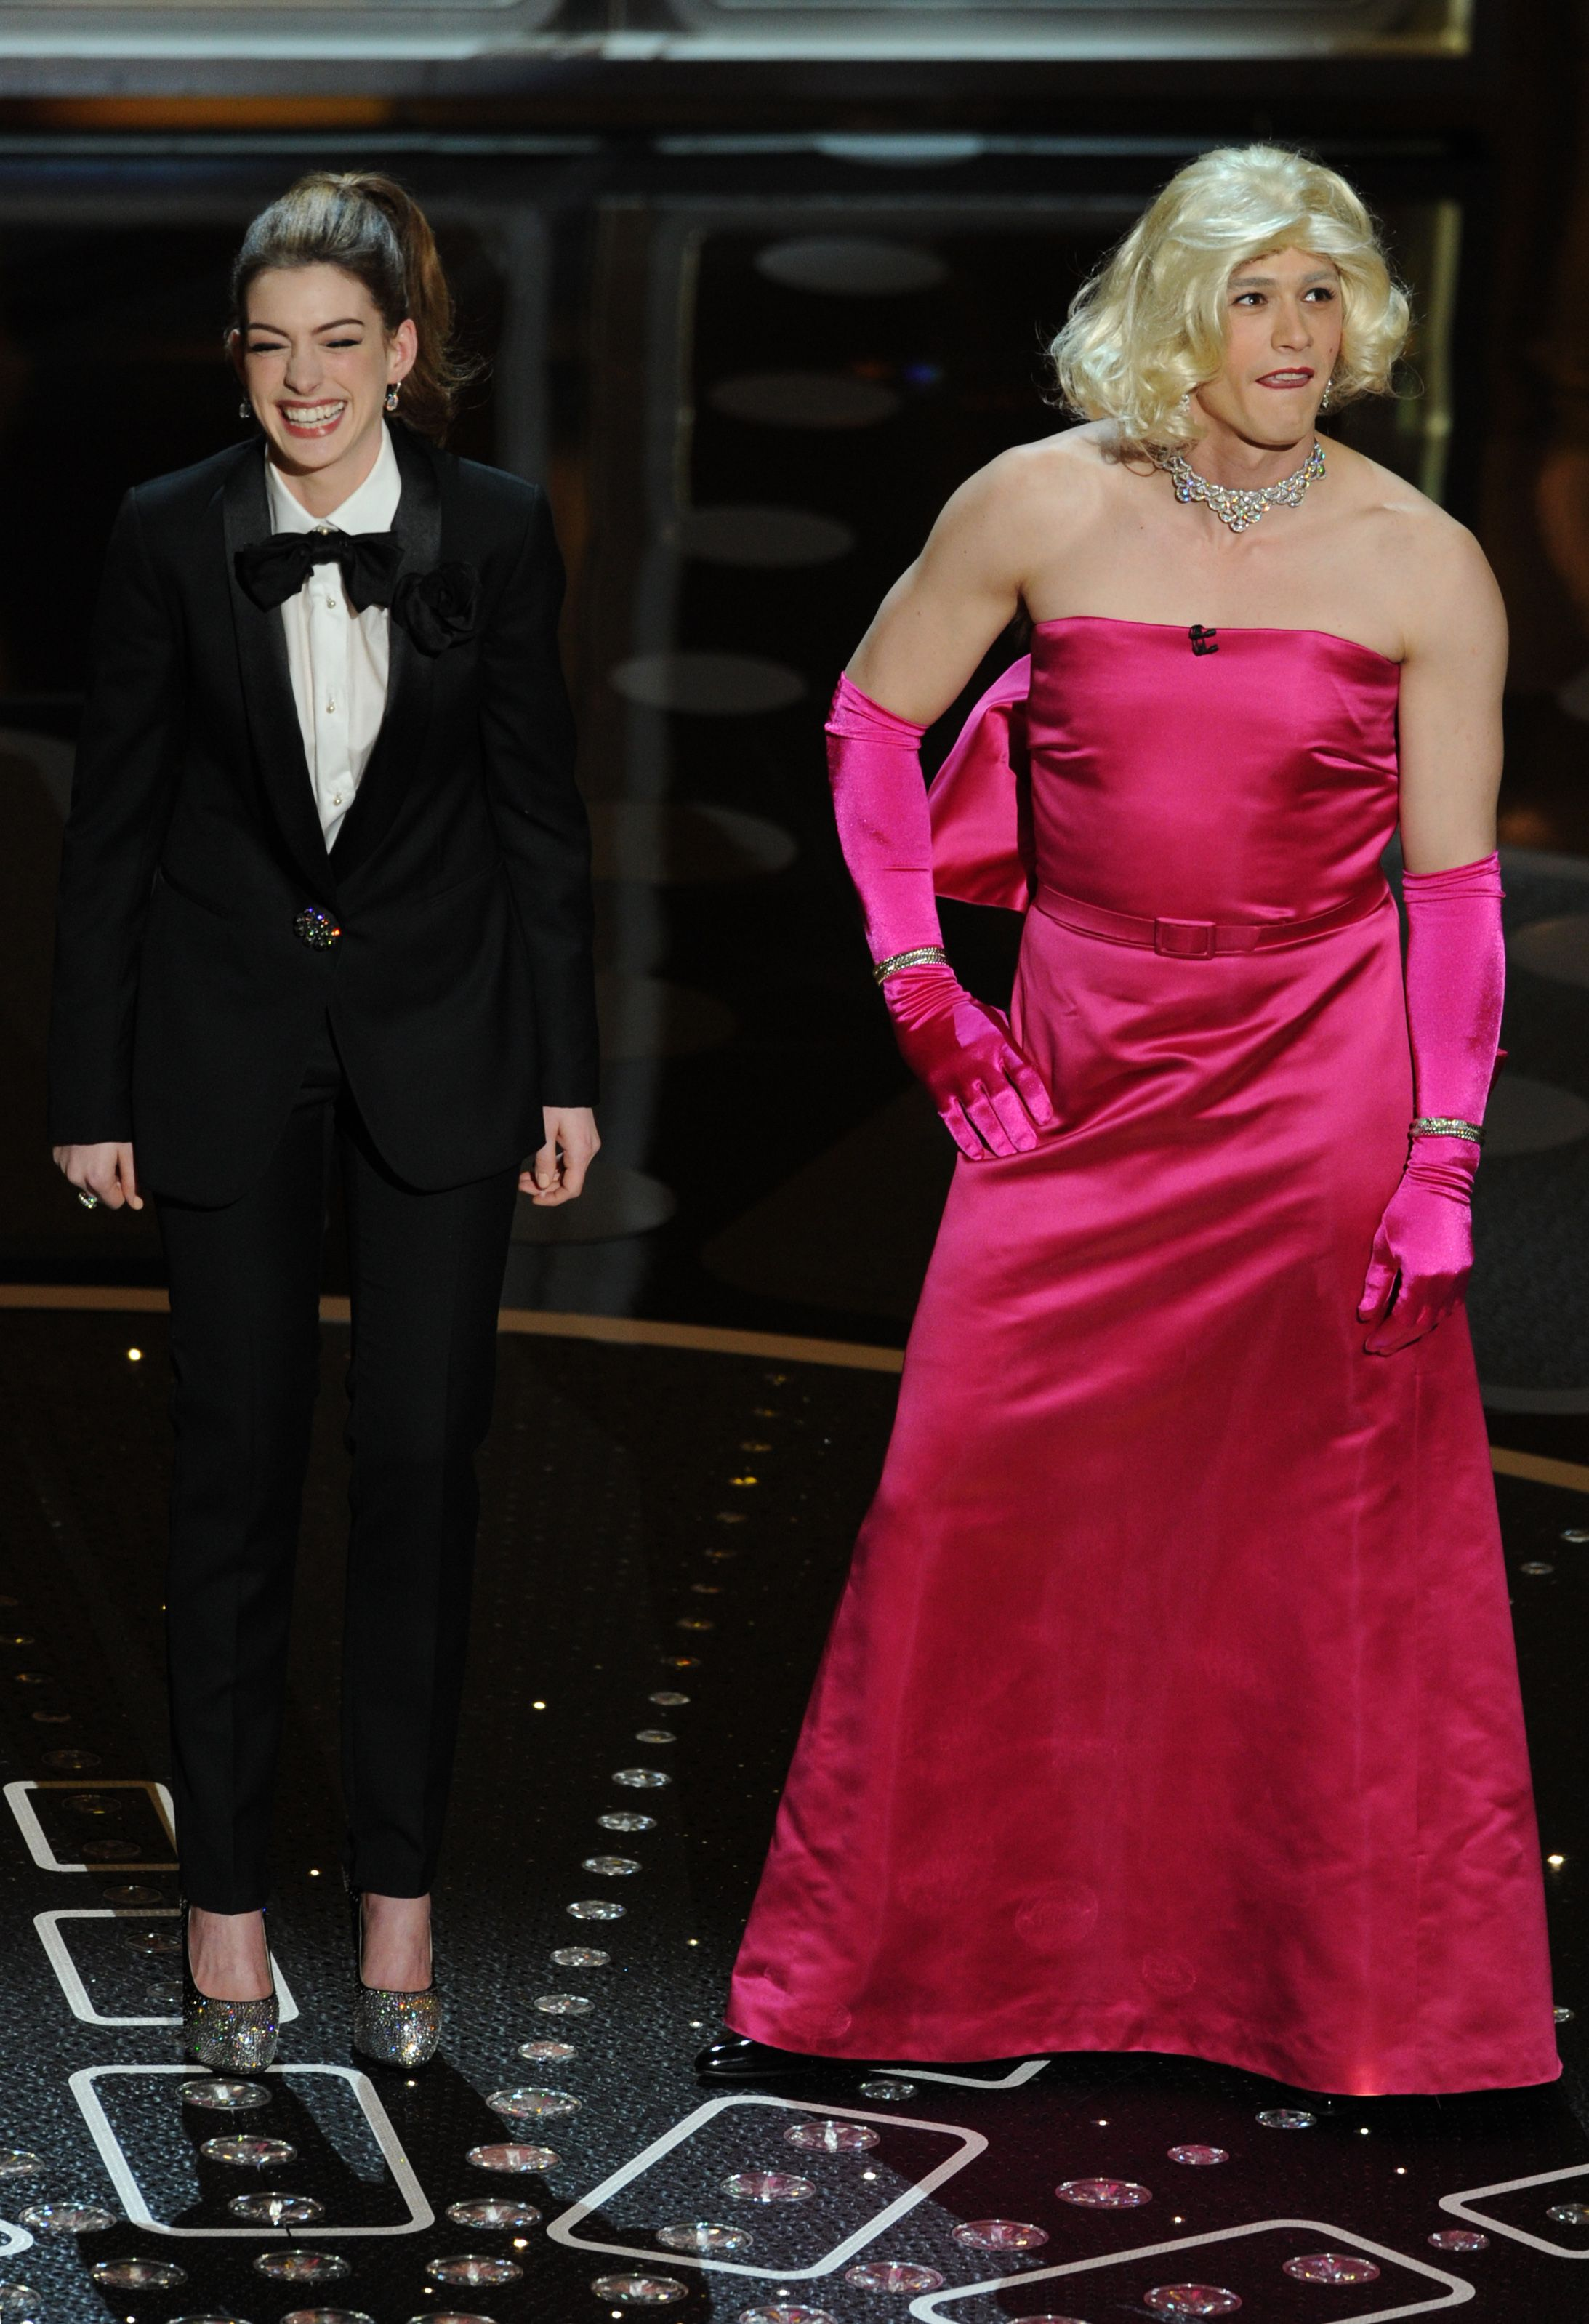 2011: When James Franco and Anne Hathaway hosted. In reversed gender roles, Franco wore a satin pink gown and Hathaway wore a tuxedo to host the 2011 Oscars.